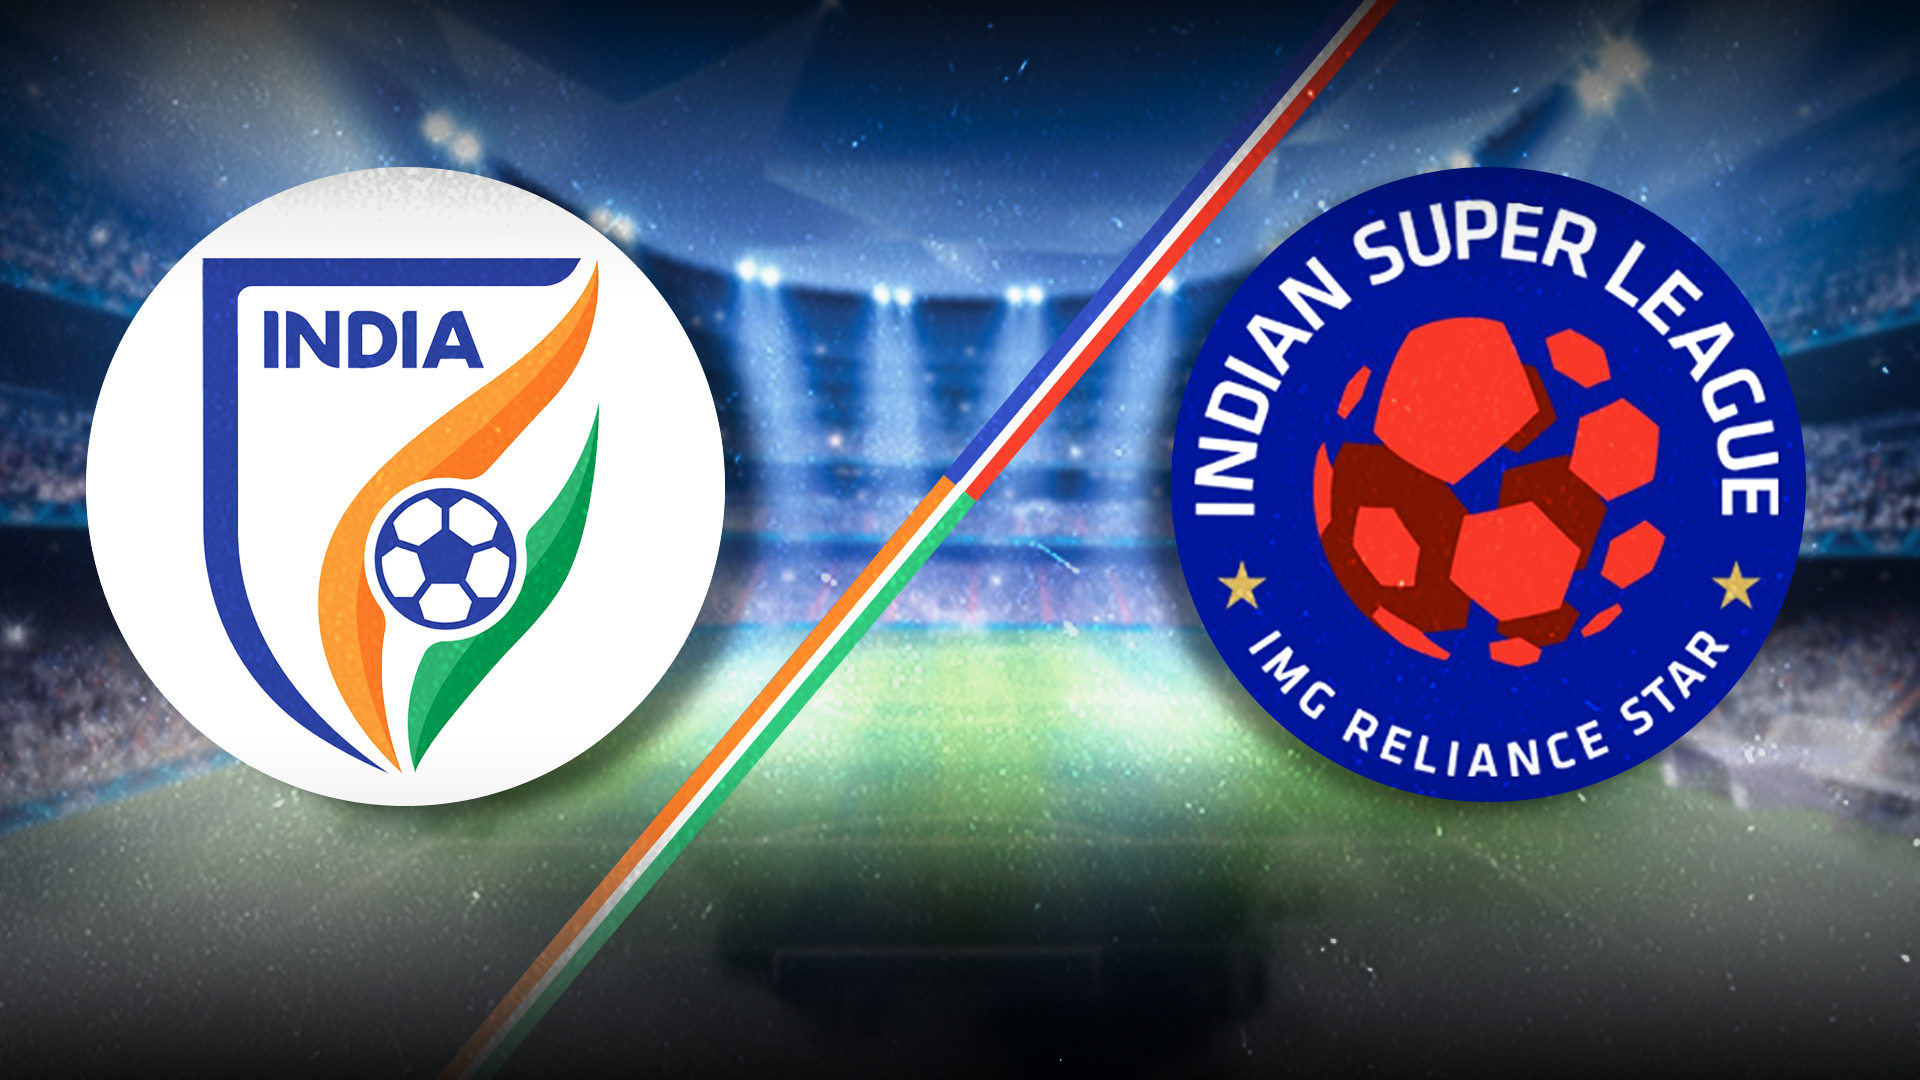 Indian football's crisis - Indian Super League (ISL) over I-League